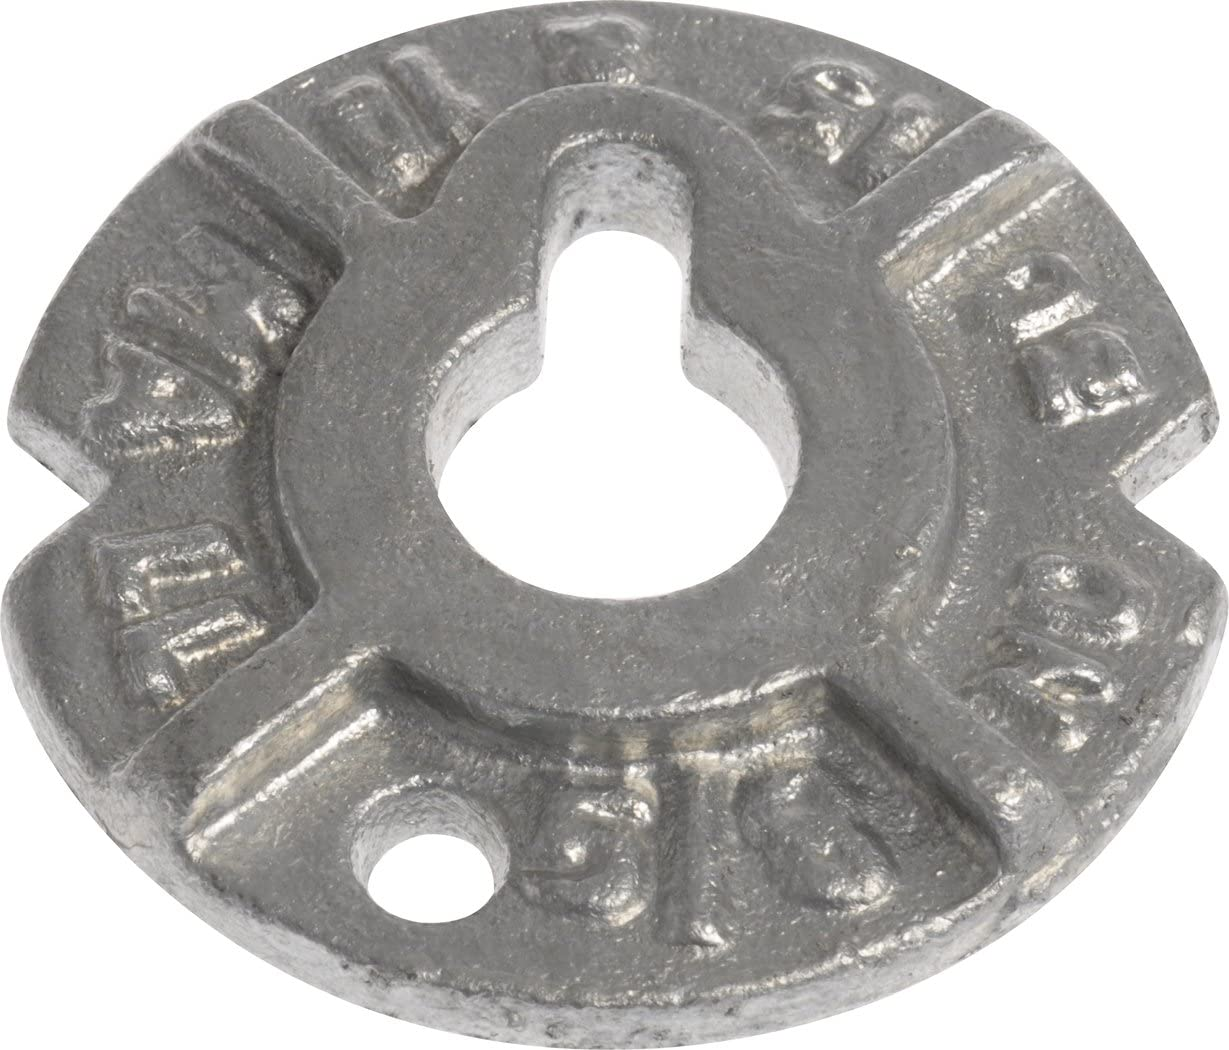 The Hillman Group 811079 OFFicial shop 5 8-Inch Washer lowest price Malleable 5-Pound